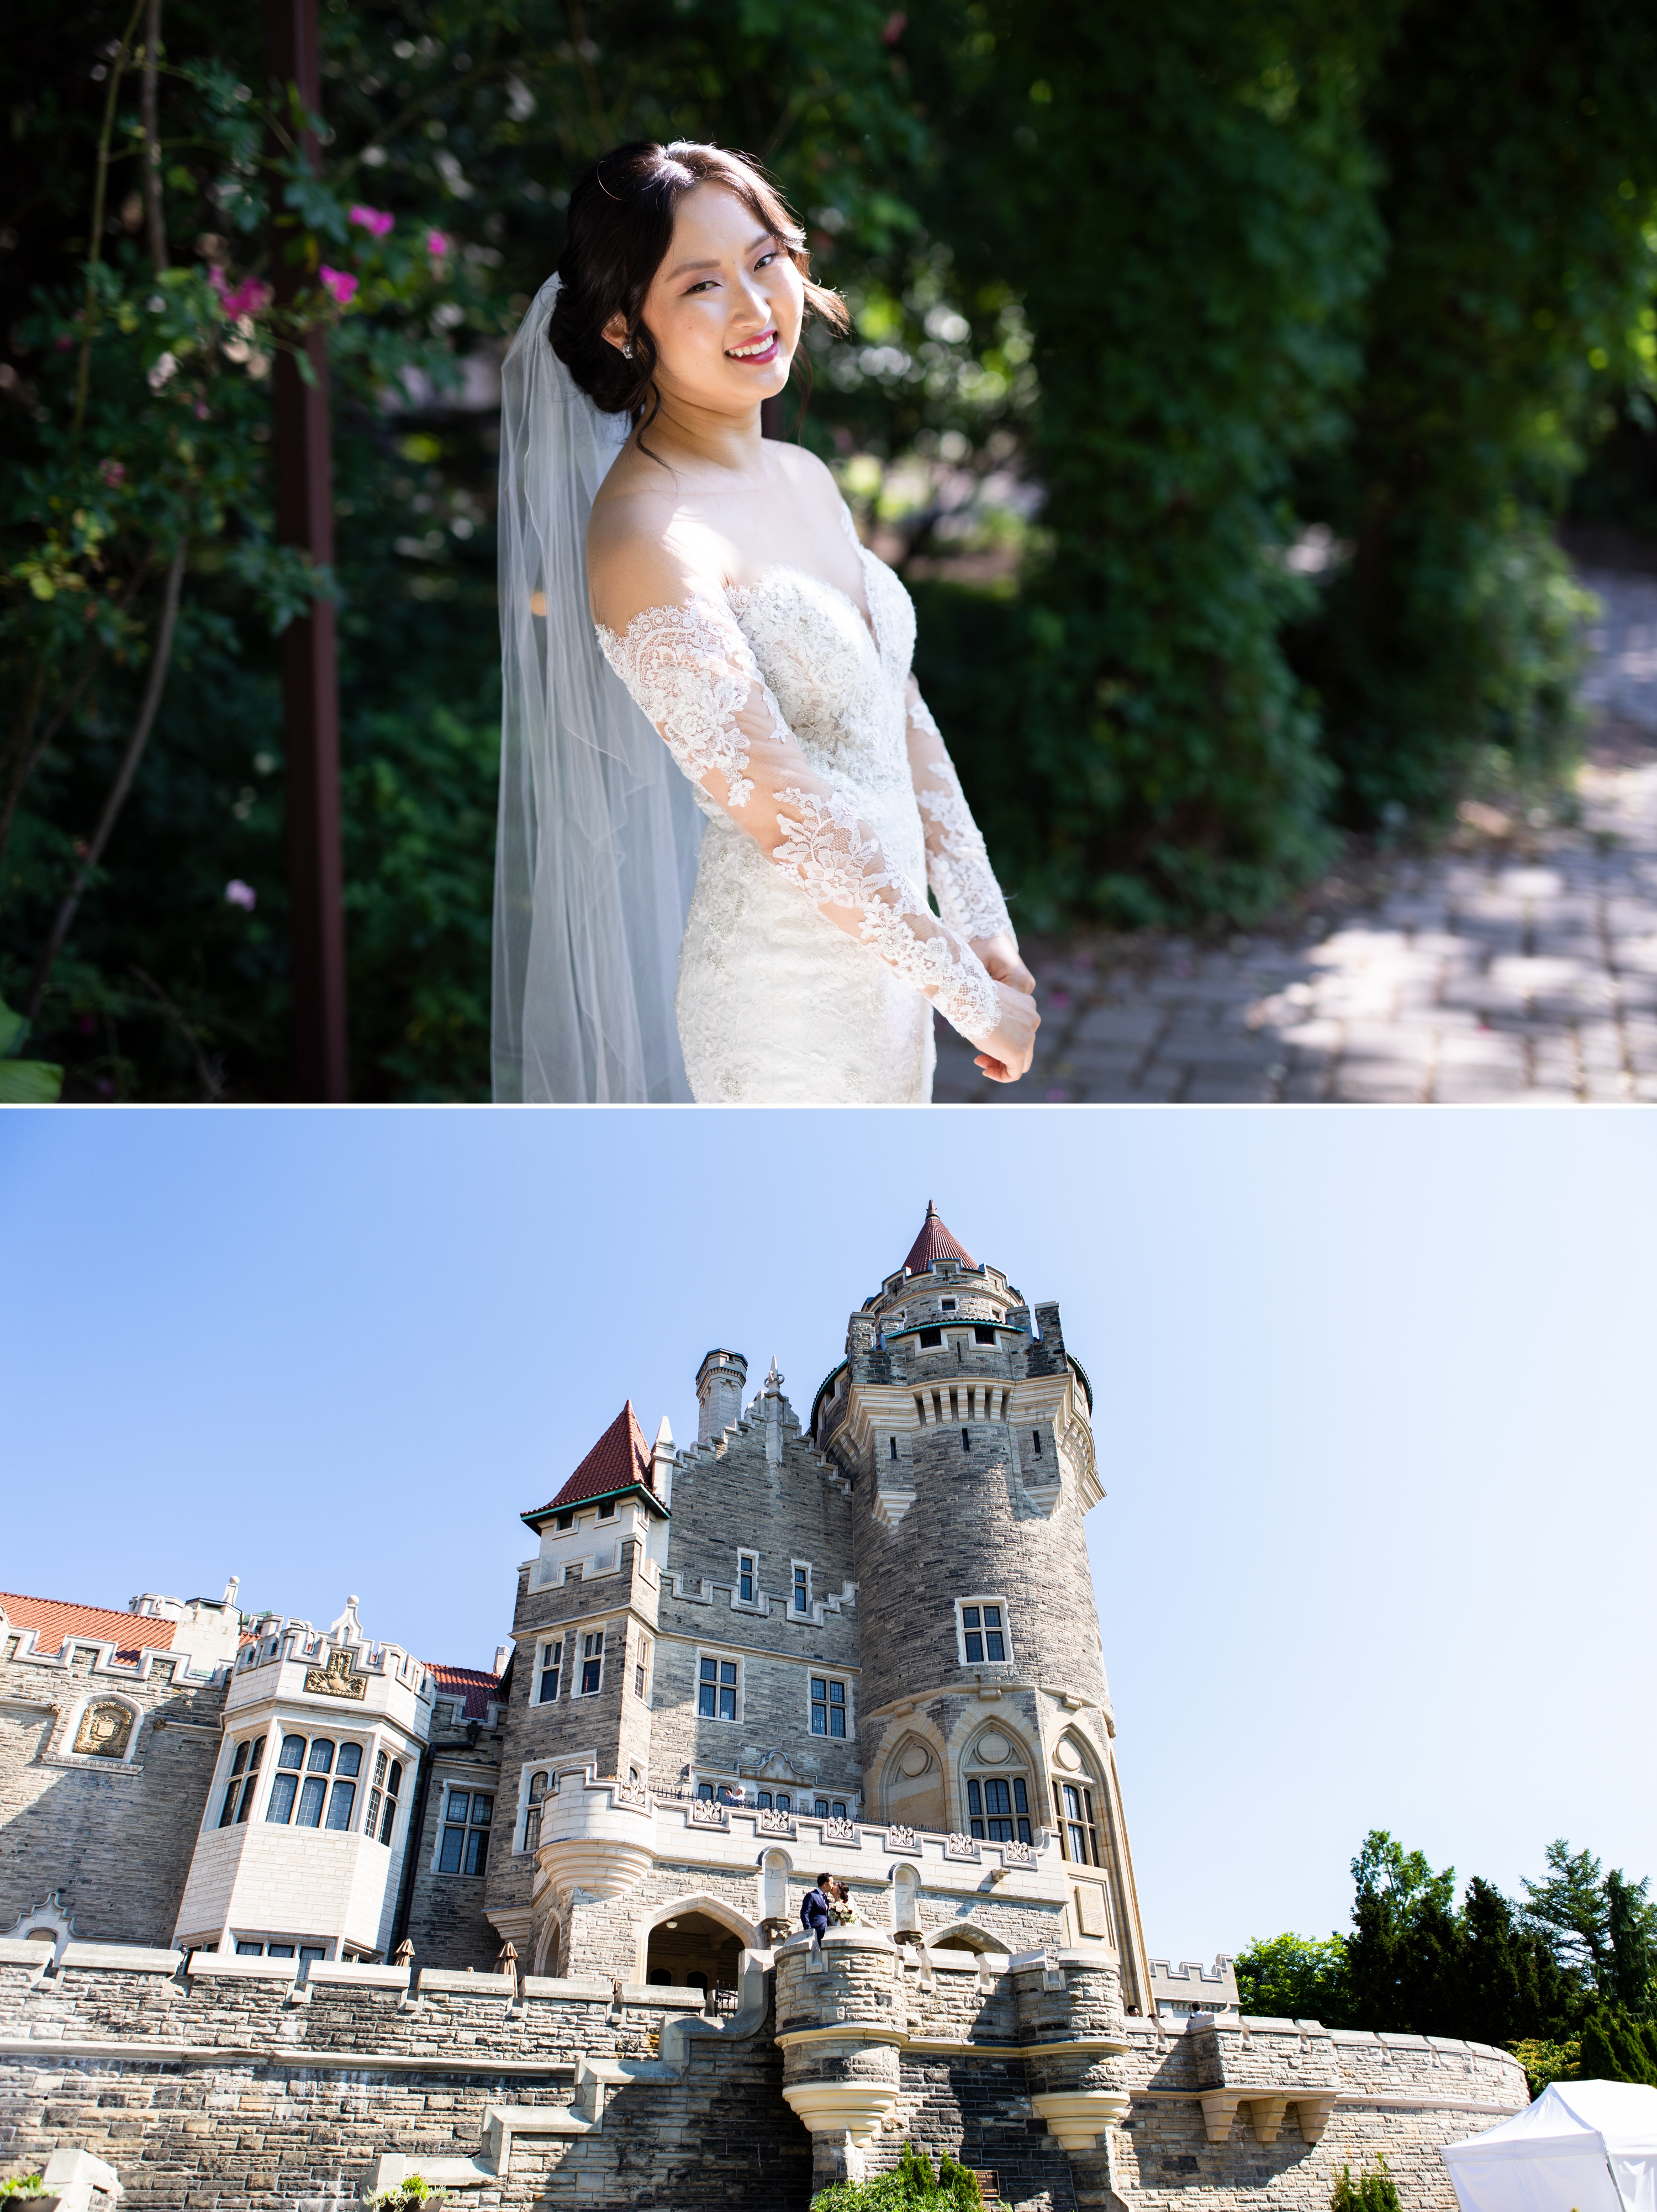 Bride Casa Loma Four Seasons Chinese Wedding Zsuzsi Pal Photography Cindy Brian